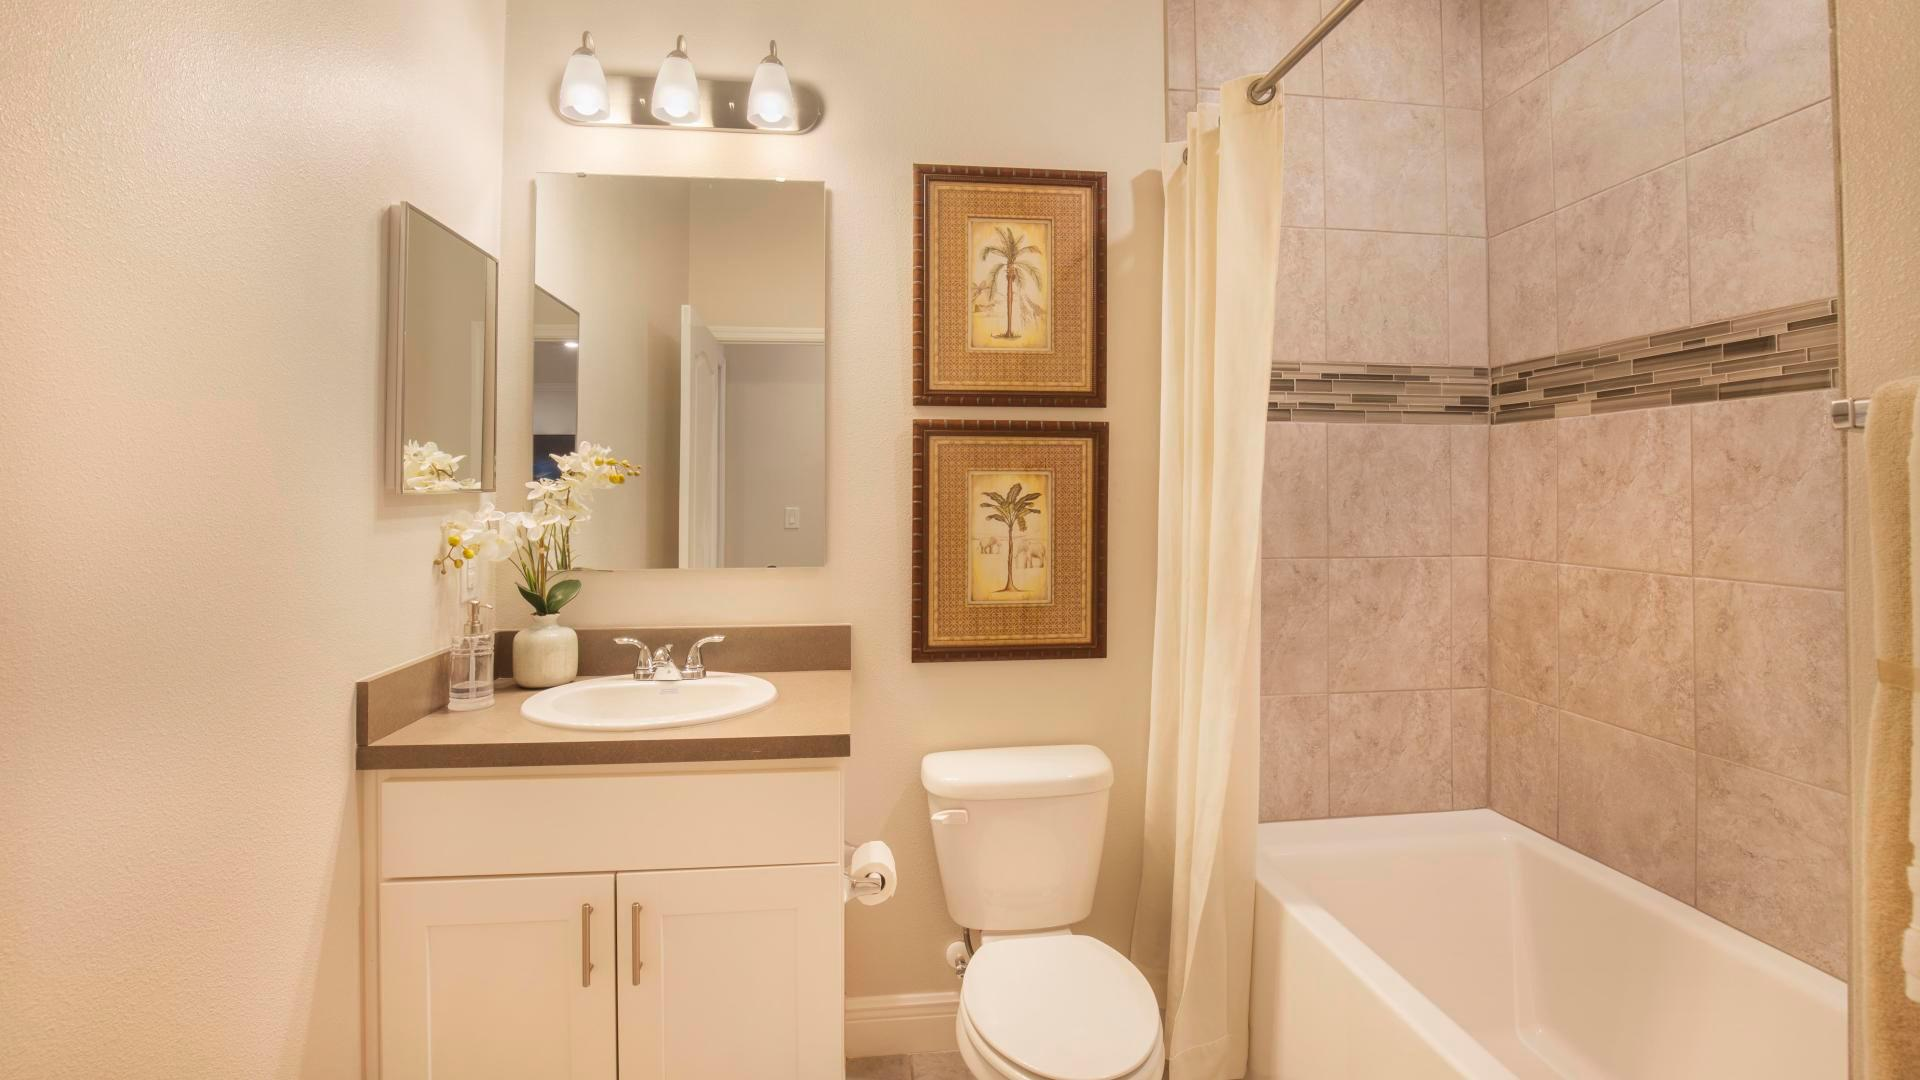 Bathroom featured in the Wilmington By Maronda Homes in Melbourne, FL